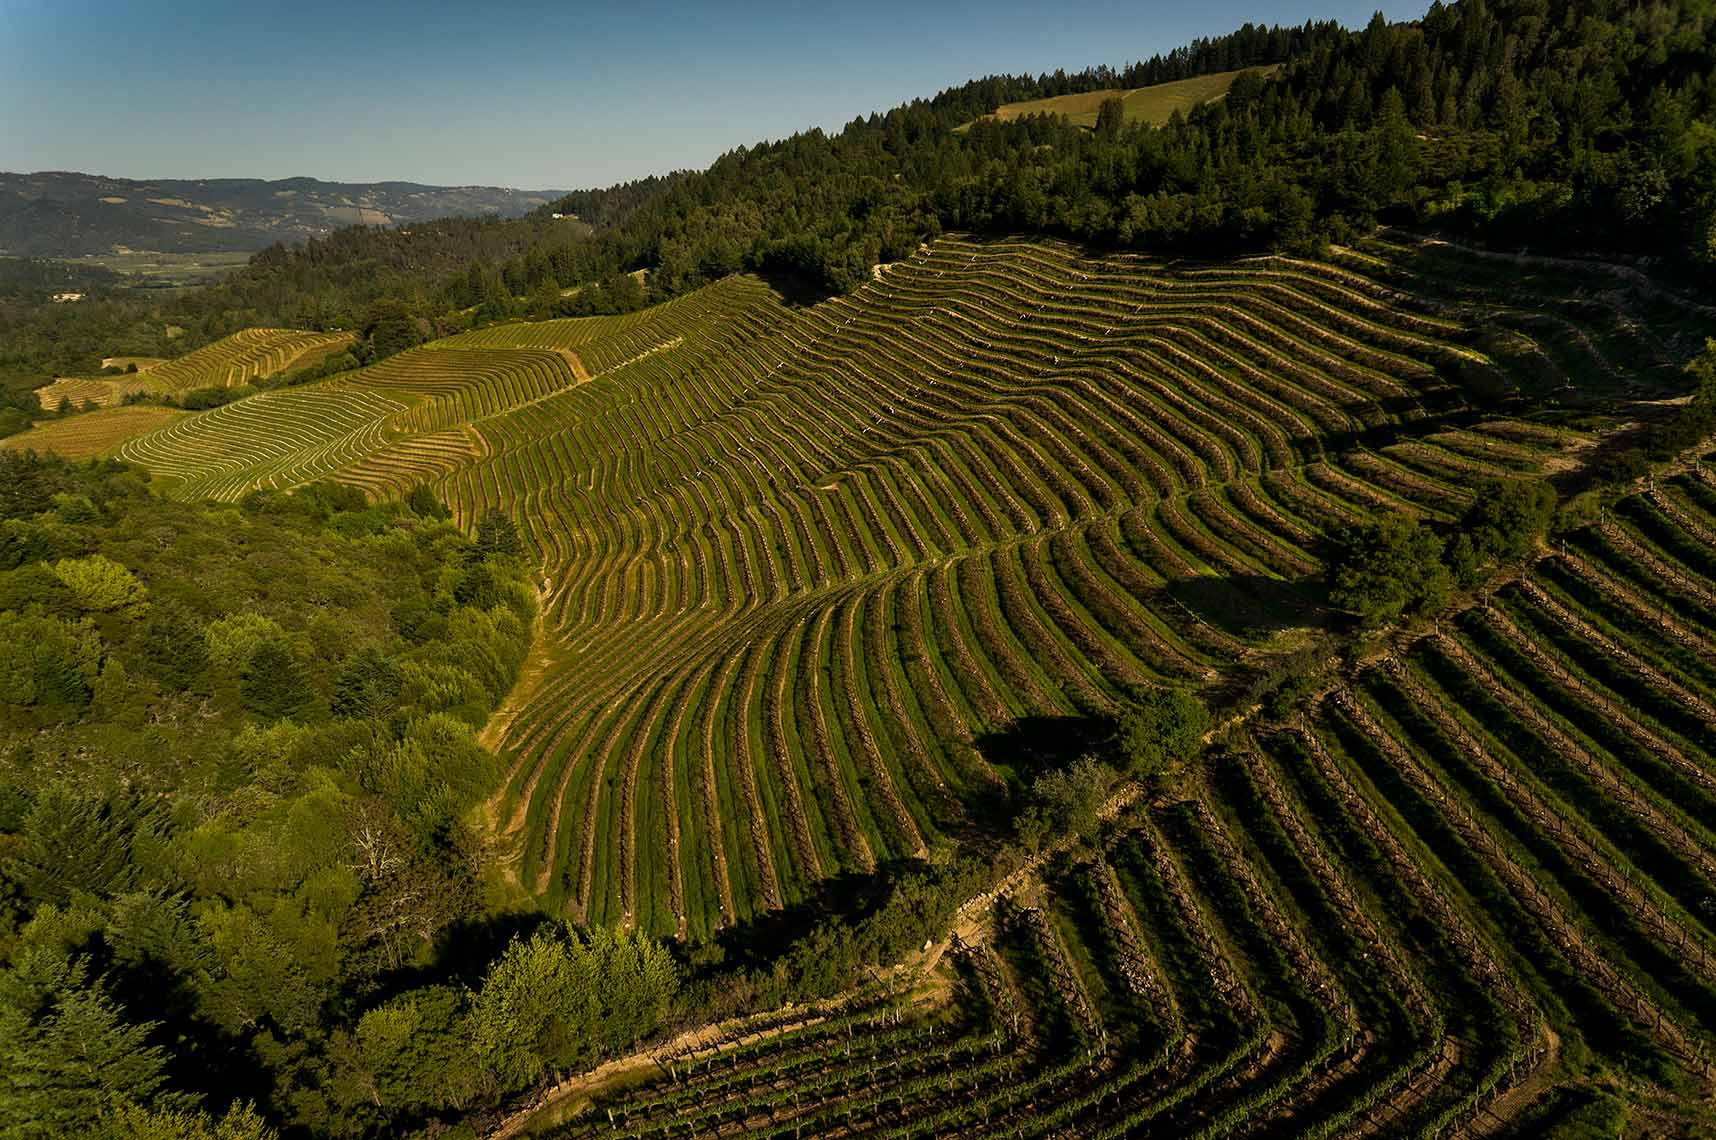 Jason Tinacci - Napa vineyard aerial photography